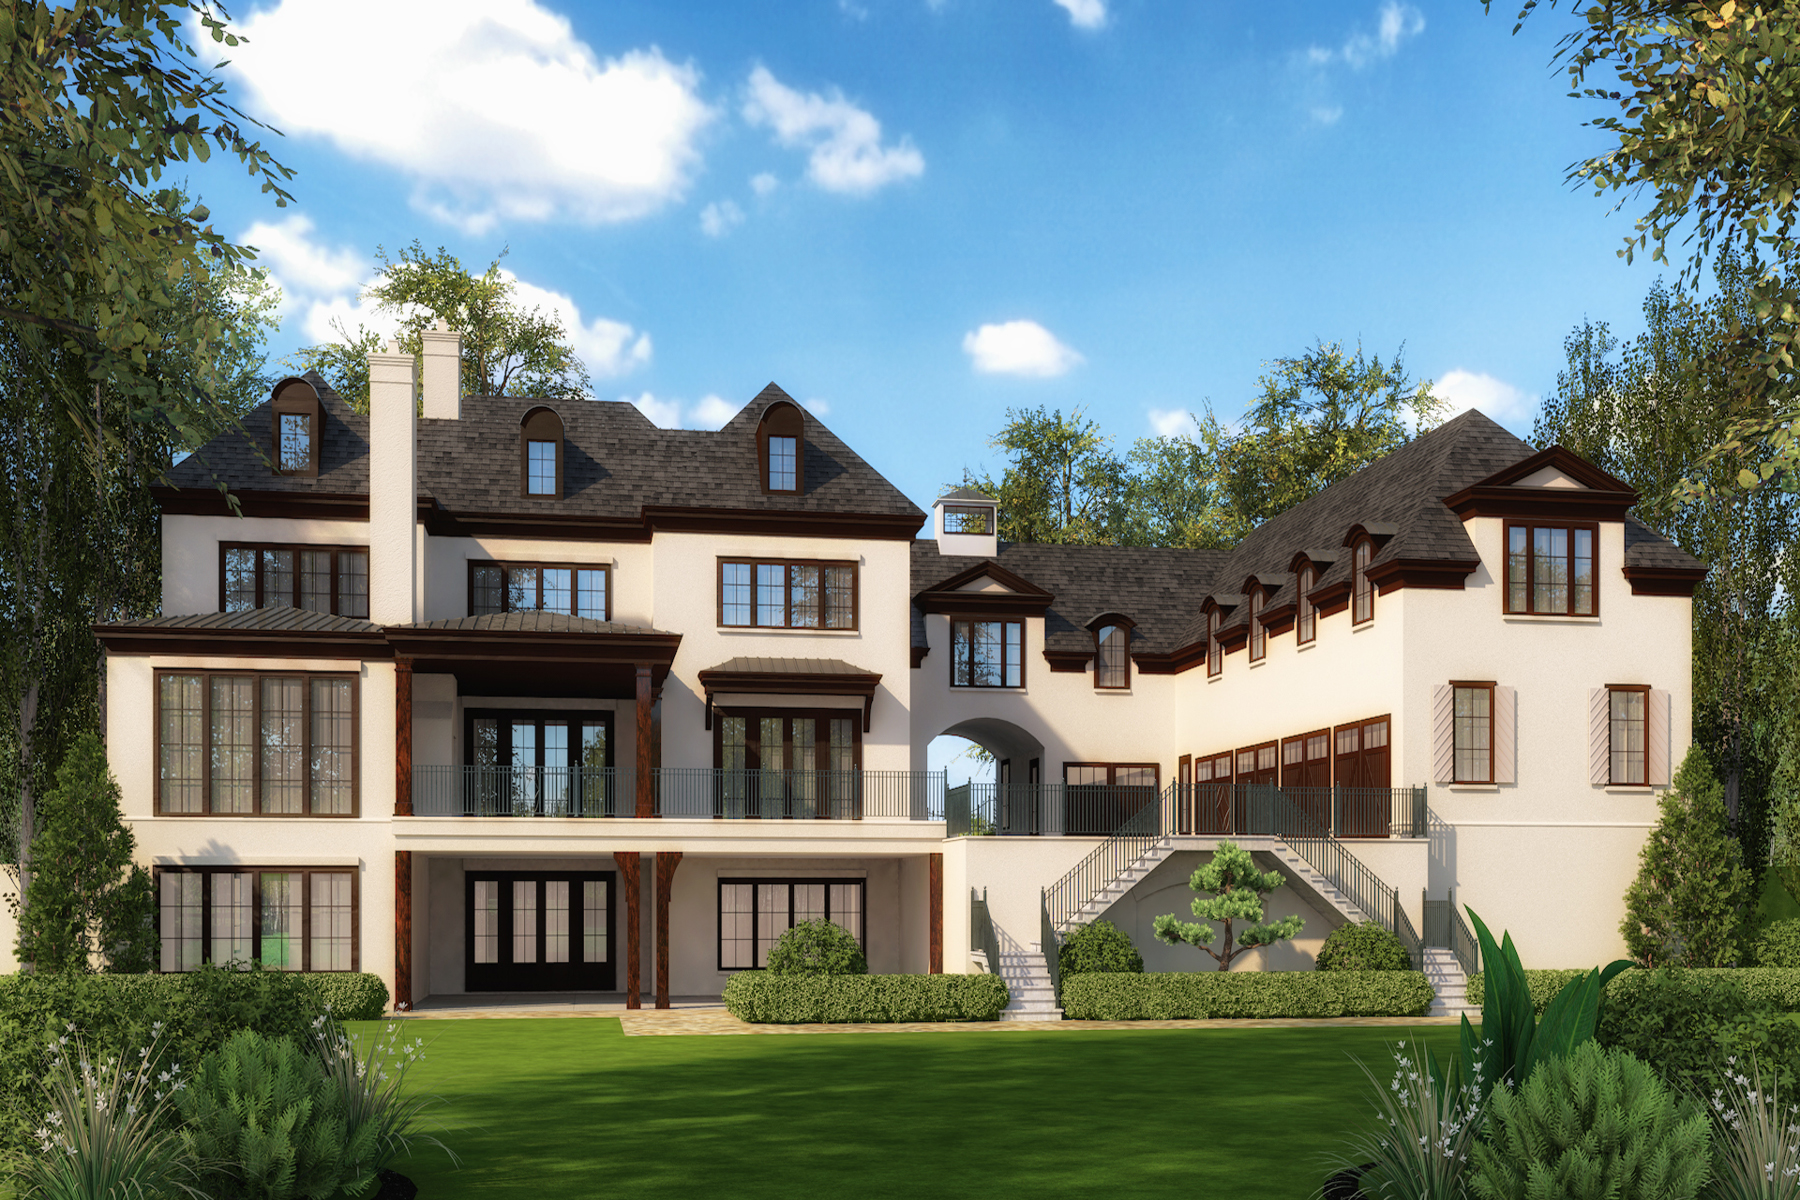 Additional photo for property listing at Exquisite New Construction 4126 Conway Valley Road NW Atlanta, Georgia 30327 Stati Uniti